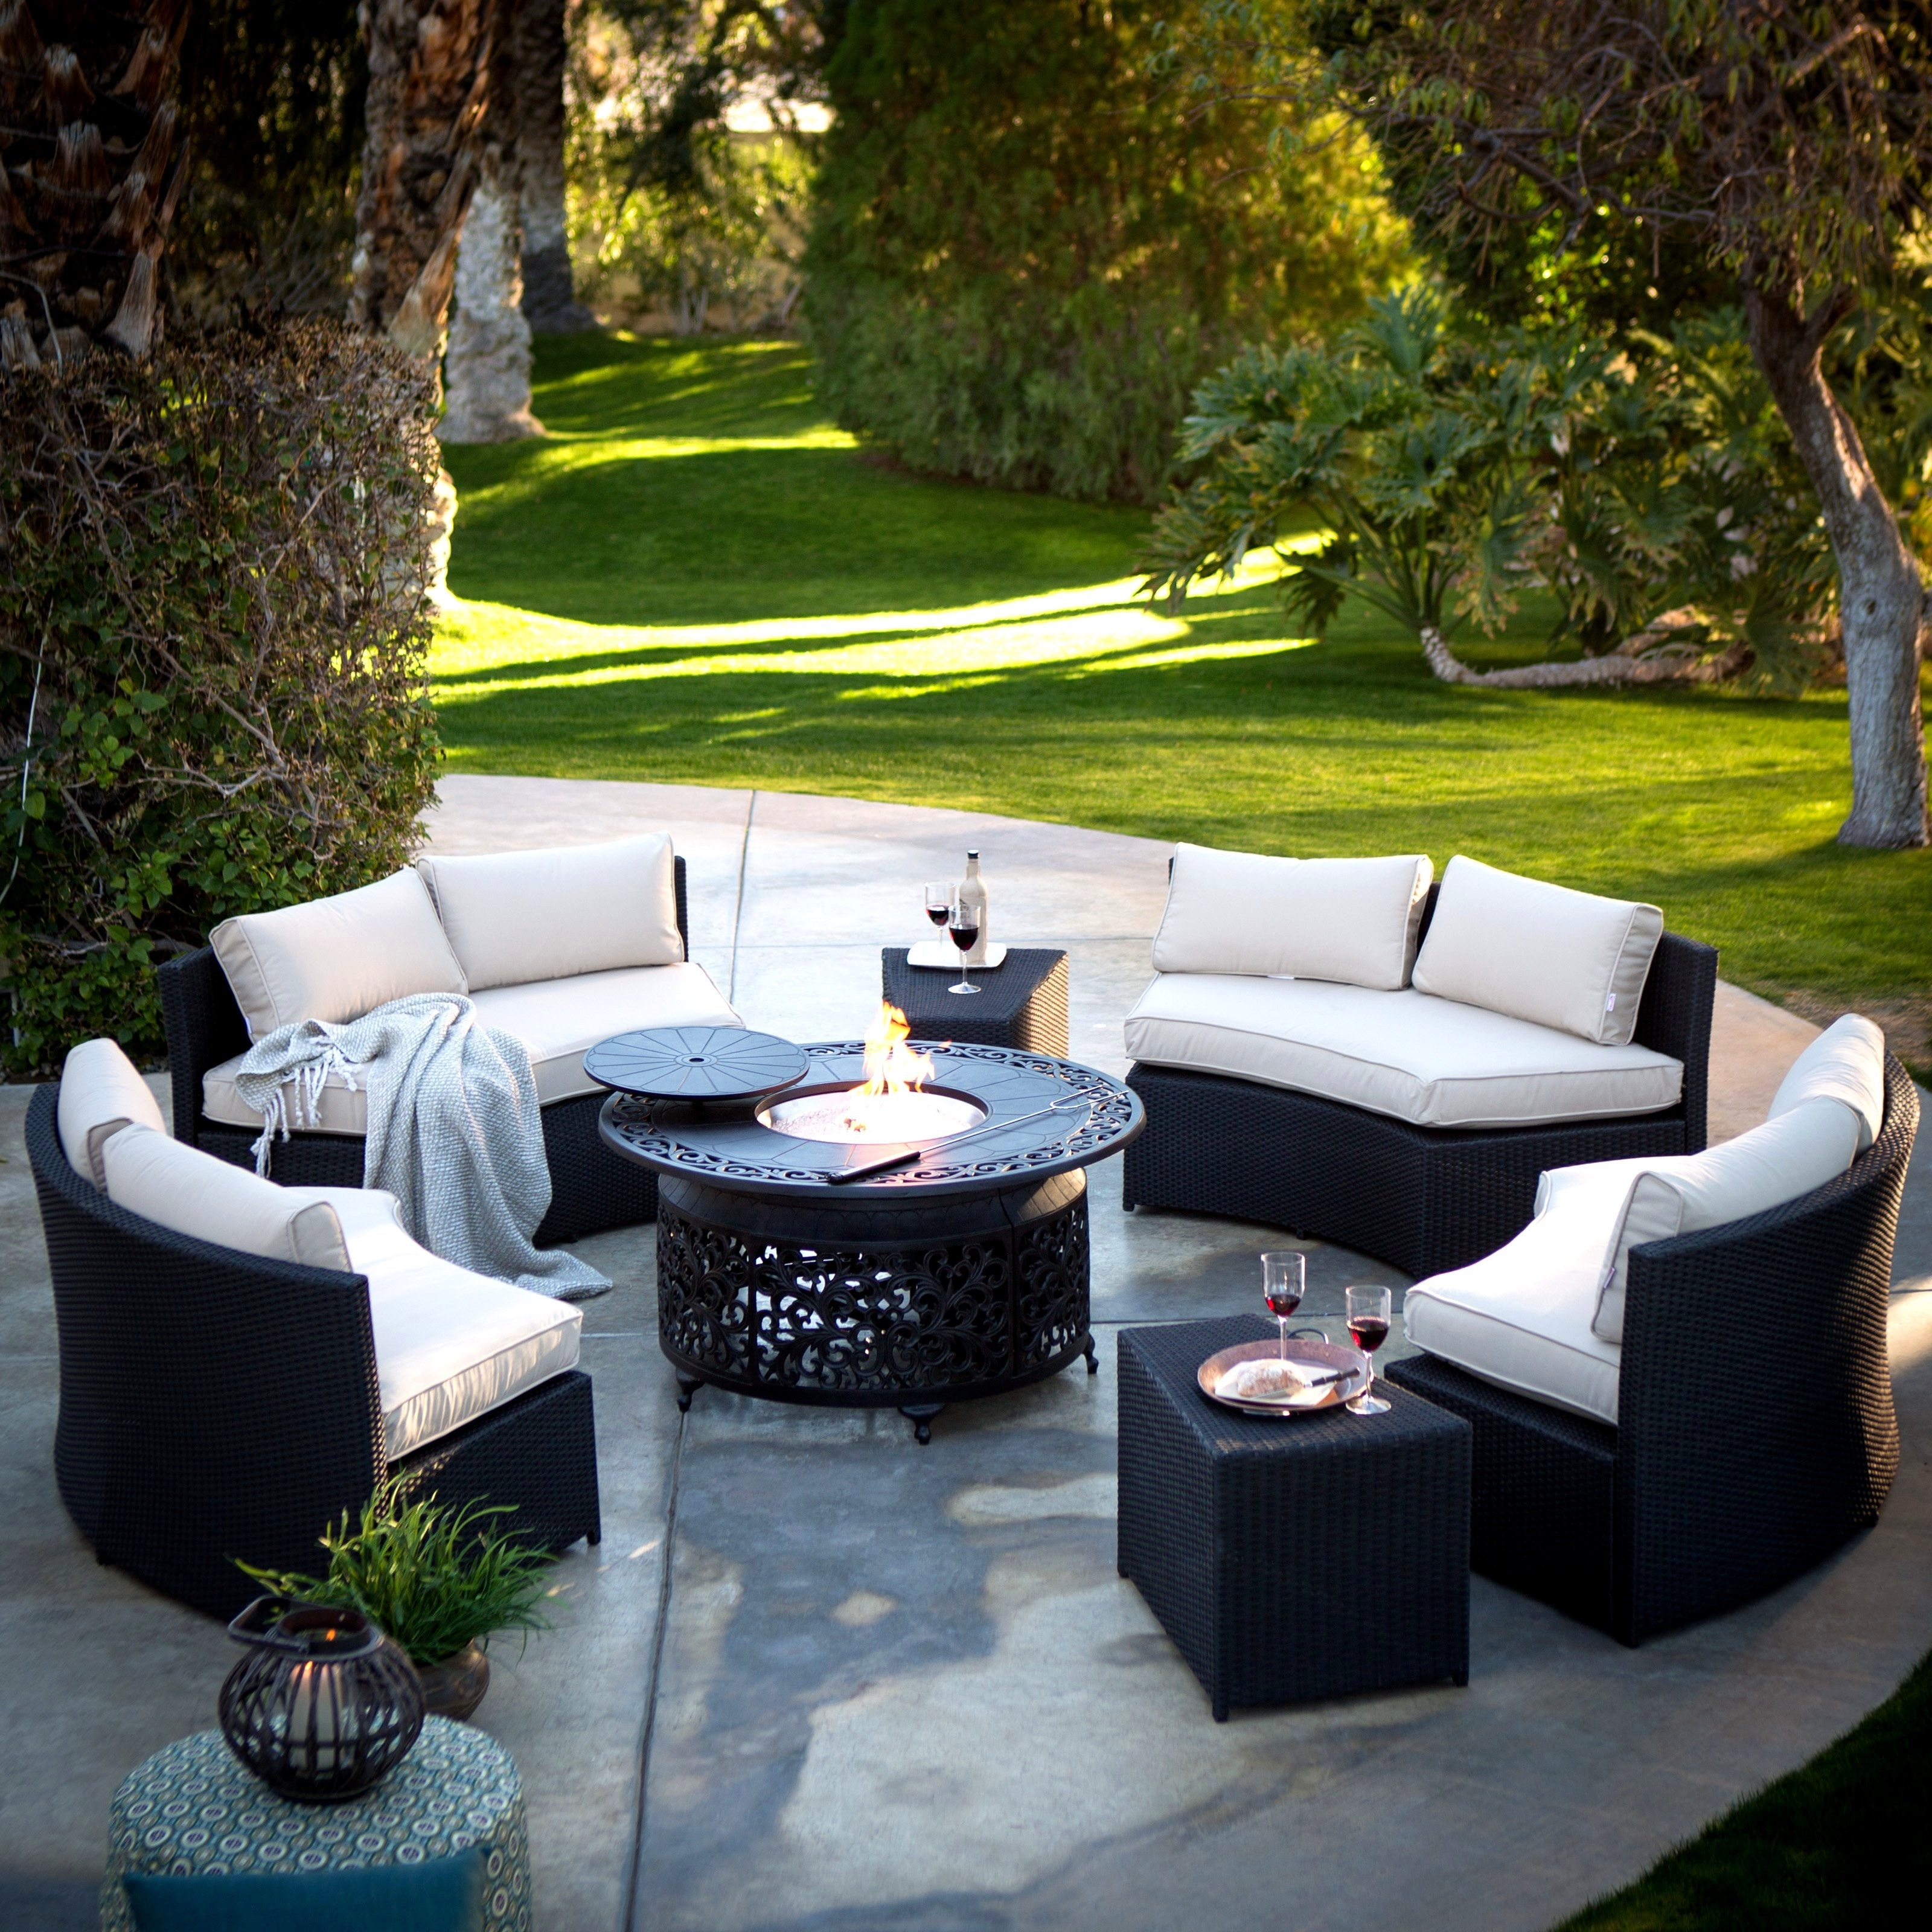 Outdoor Patio Furniture Conversation Sets Within Most Up To Date 30 Luxury Patio Conversation Sets Clearance Scheme – Onionskeen (View 8 of 15)